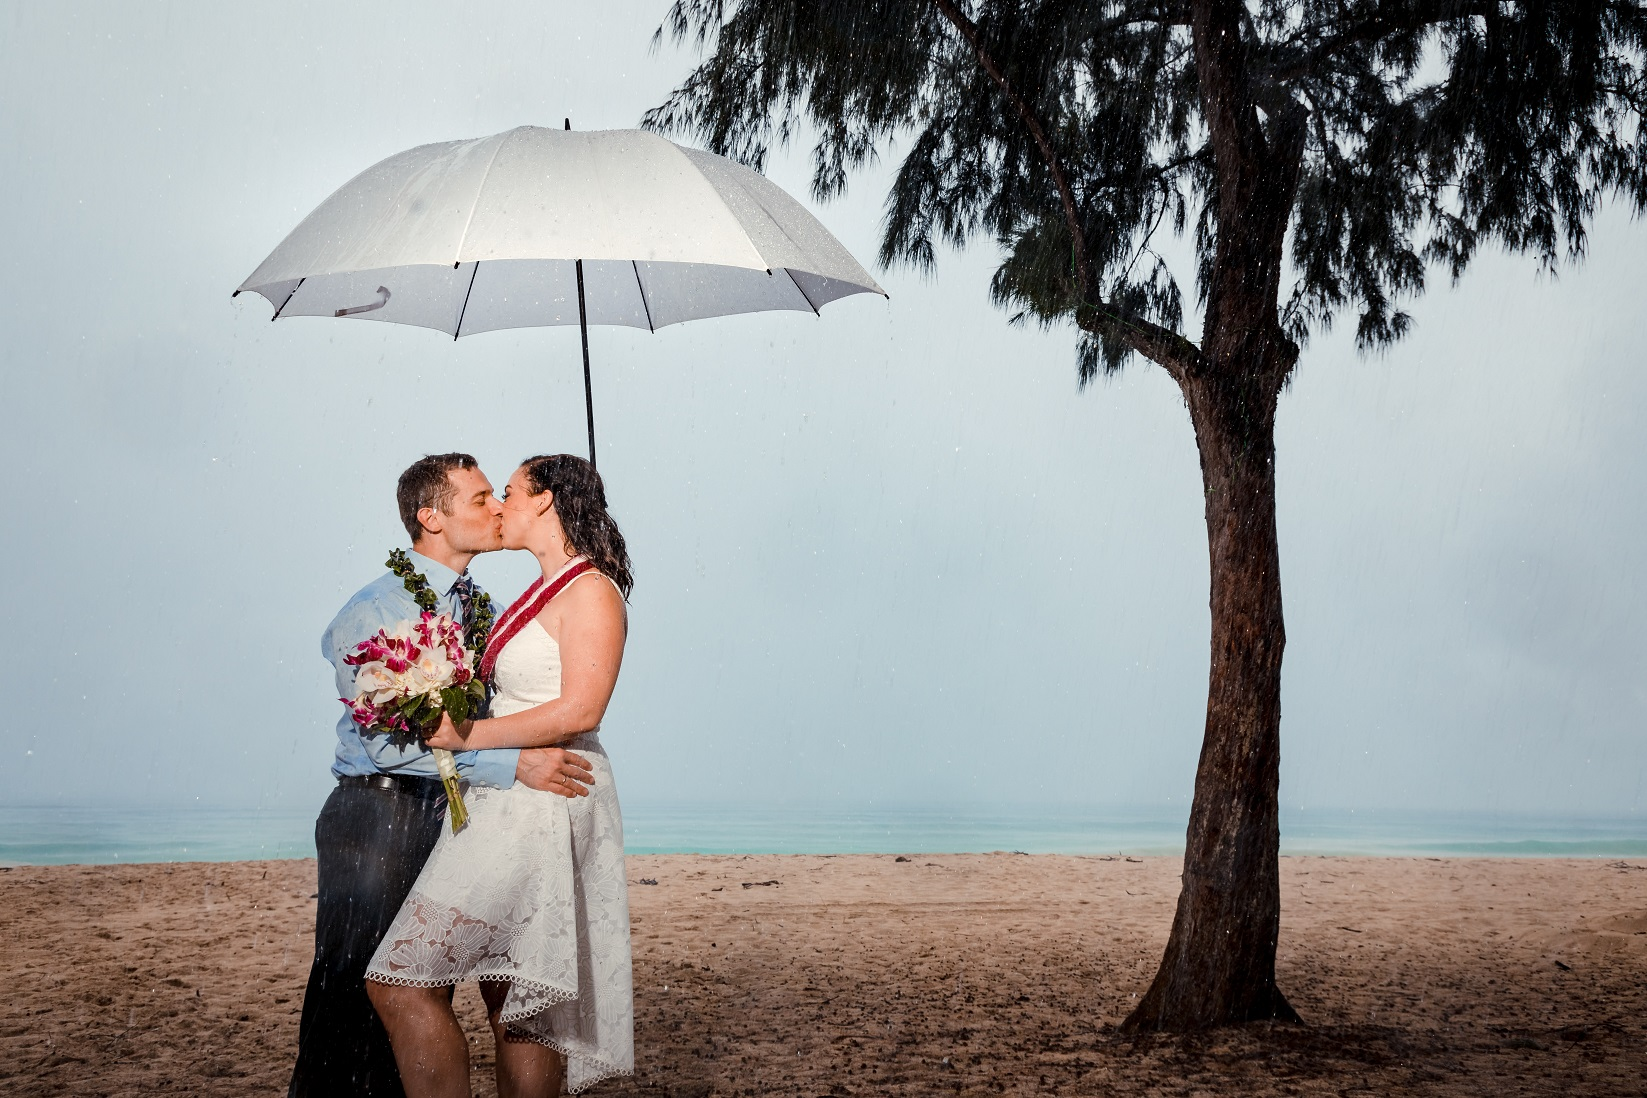 raining day hawaiian beach wedding umbrella